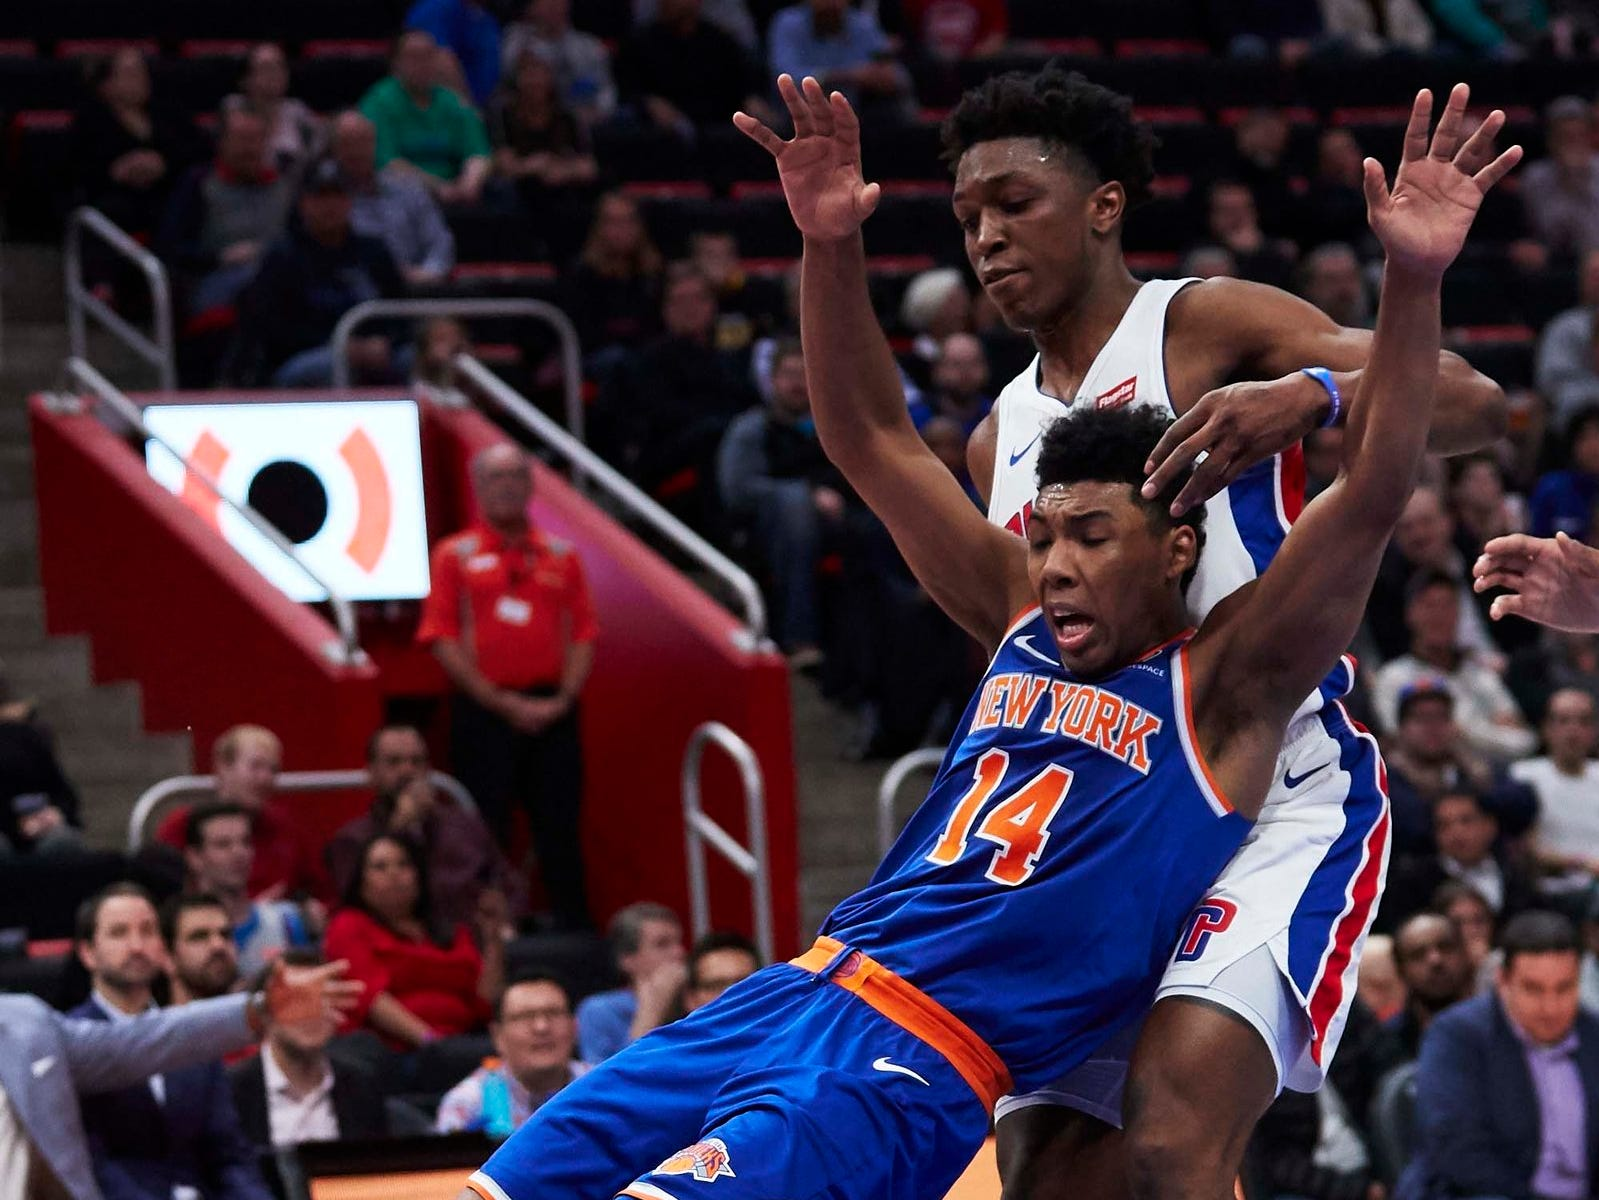 New York Knicks guard Allonzo Trier (14) is fouled by Detroit Pistons forward Stanley Johnson (7) in the second half at Little Caesars Arena.